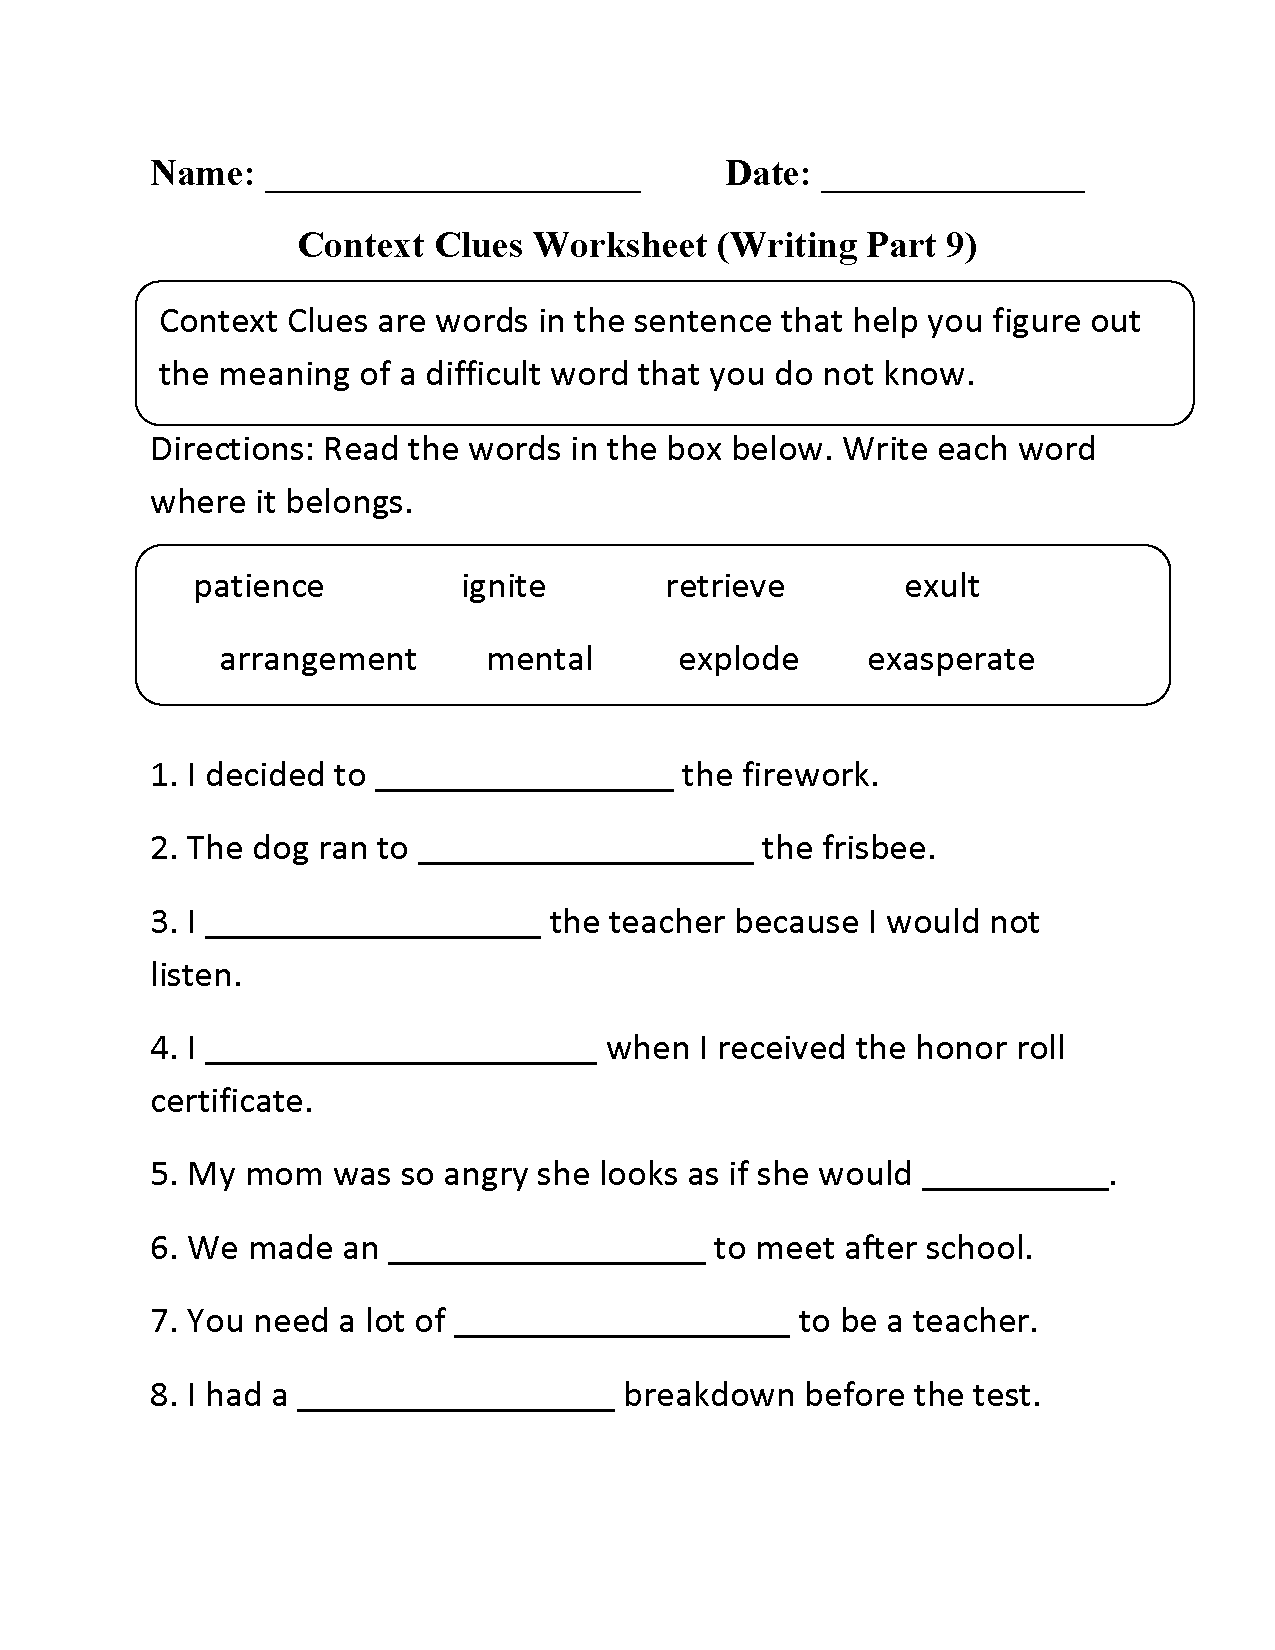 Context Clues Worksheet Writing Part 9 Intermediate